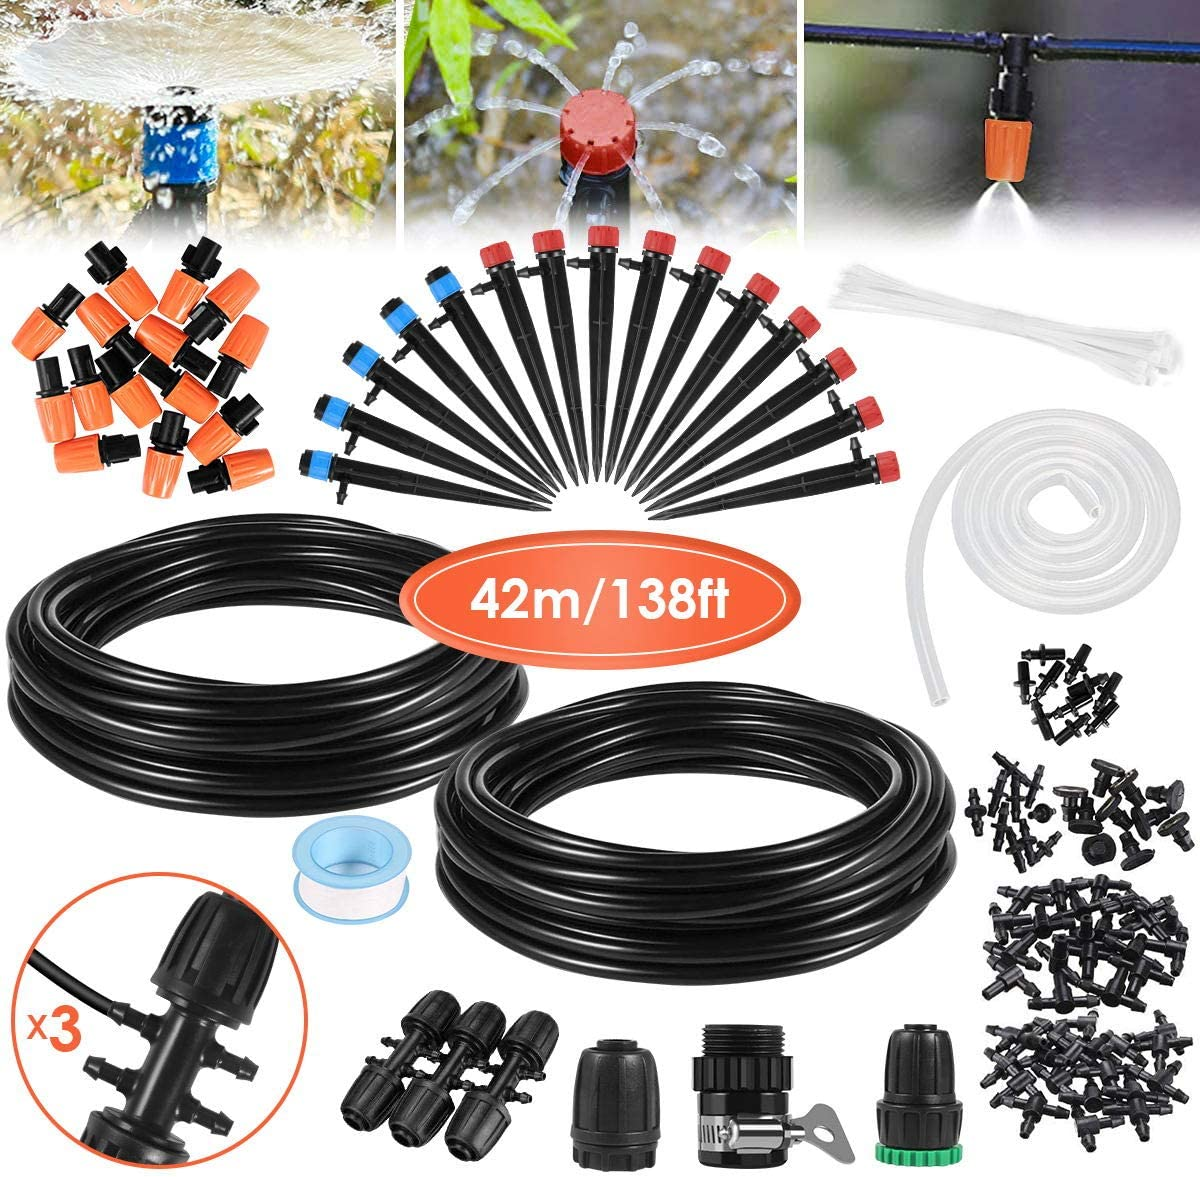 Automatic 138ft Drip Irrigation Kit with Adjustable Nozzle